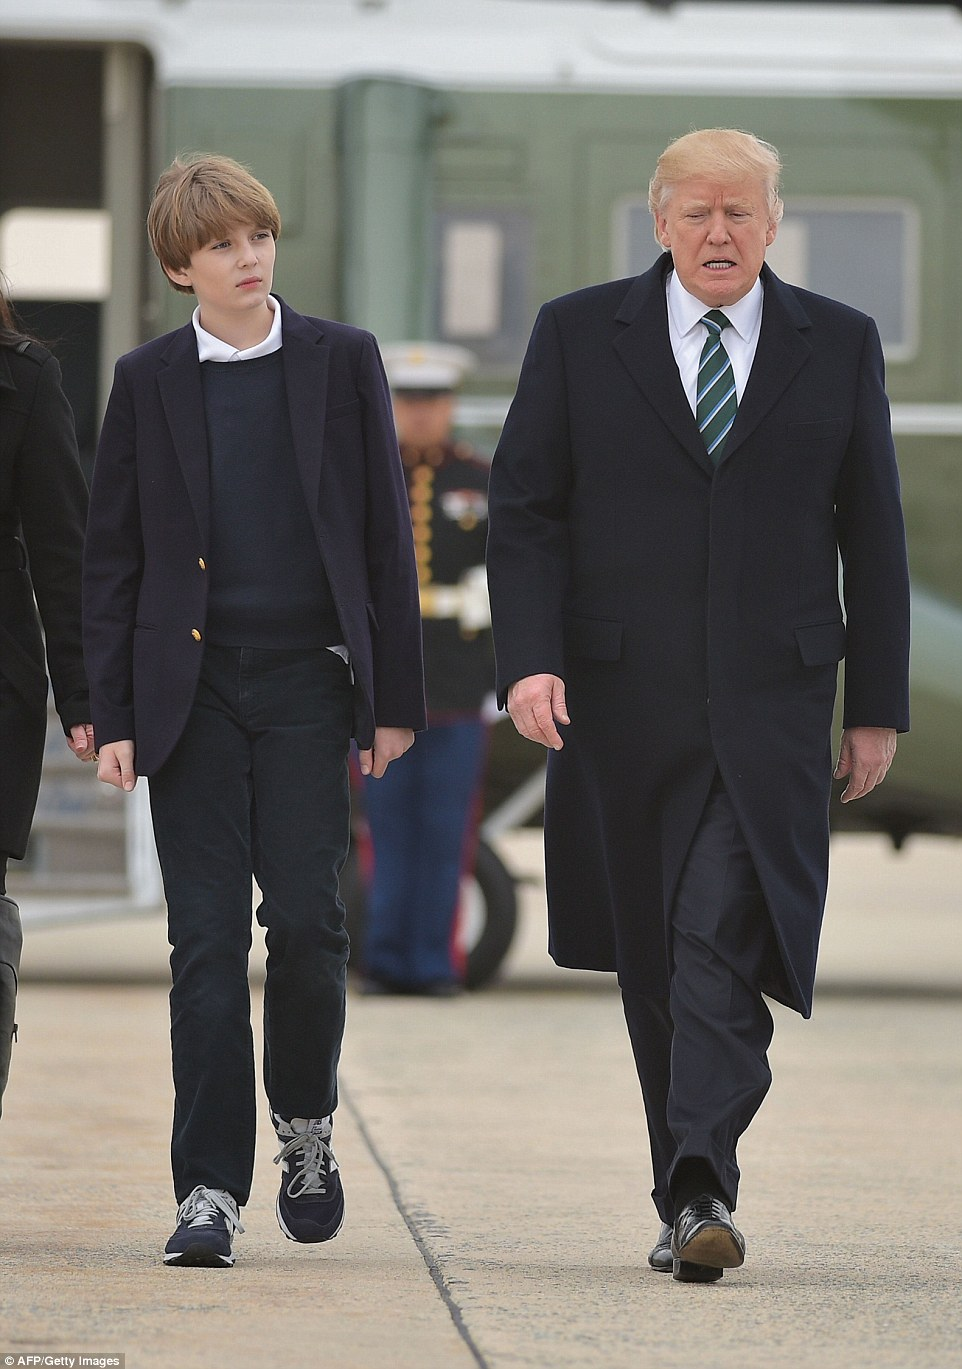 Barron is already almost as tall as his father, despite only being ten years old